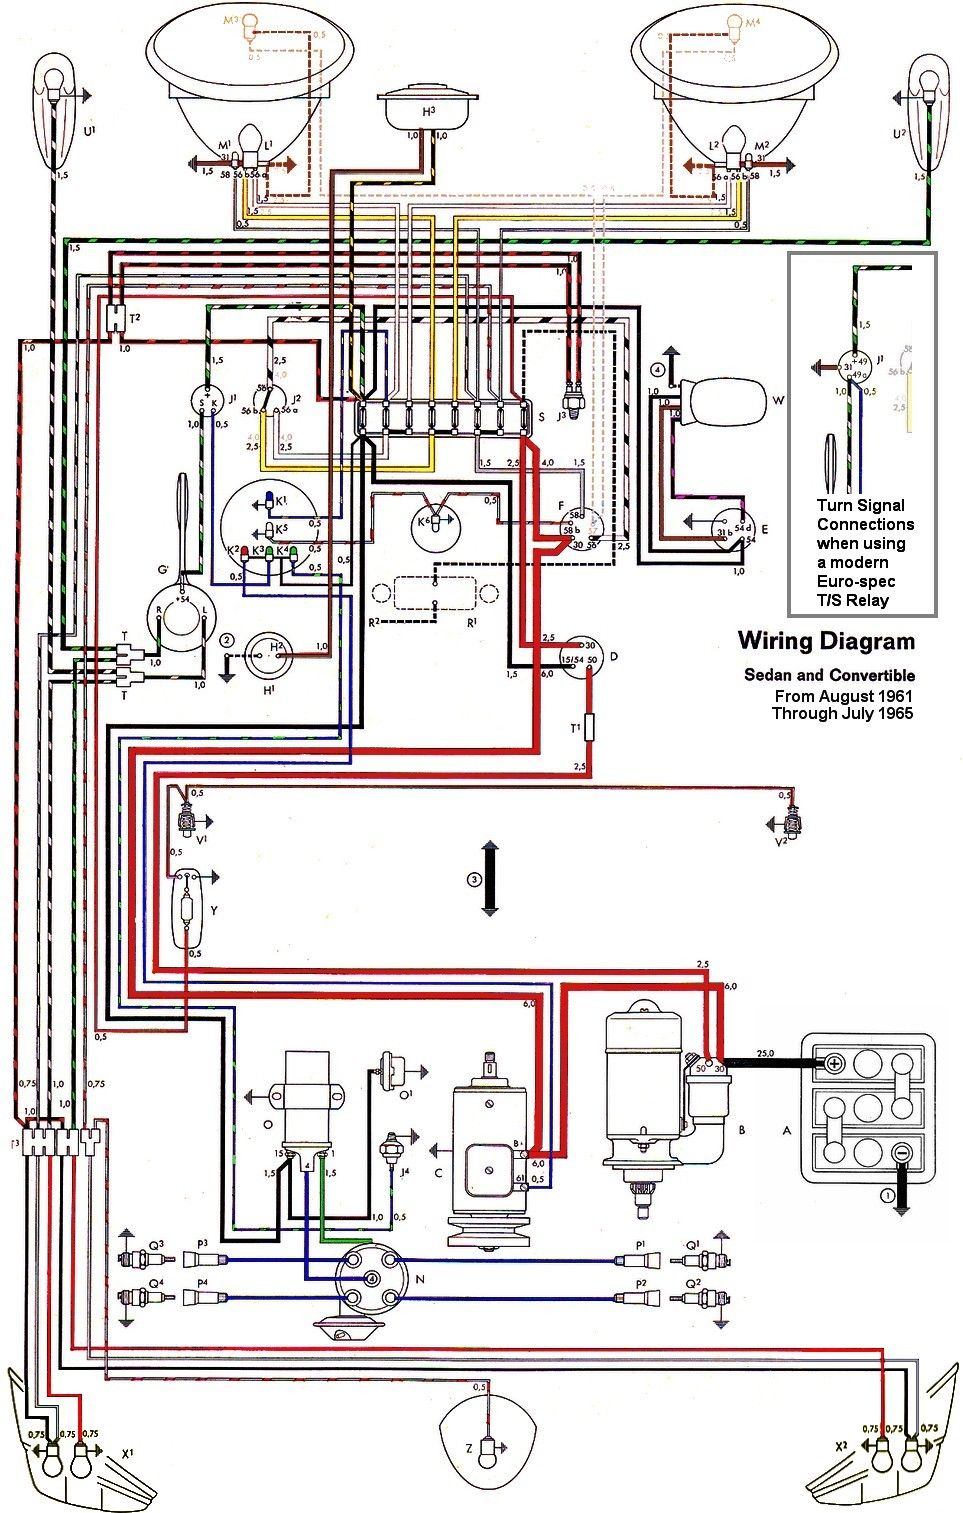 Vw Beetle Fuse Diagram Circuit Schema Wiring Generator To Box 72 Detailed Schematics 2014 Volkswagen Jetta